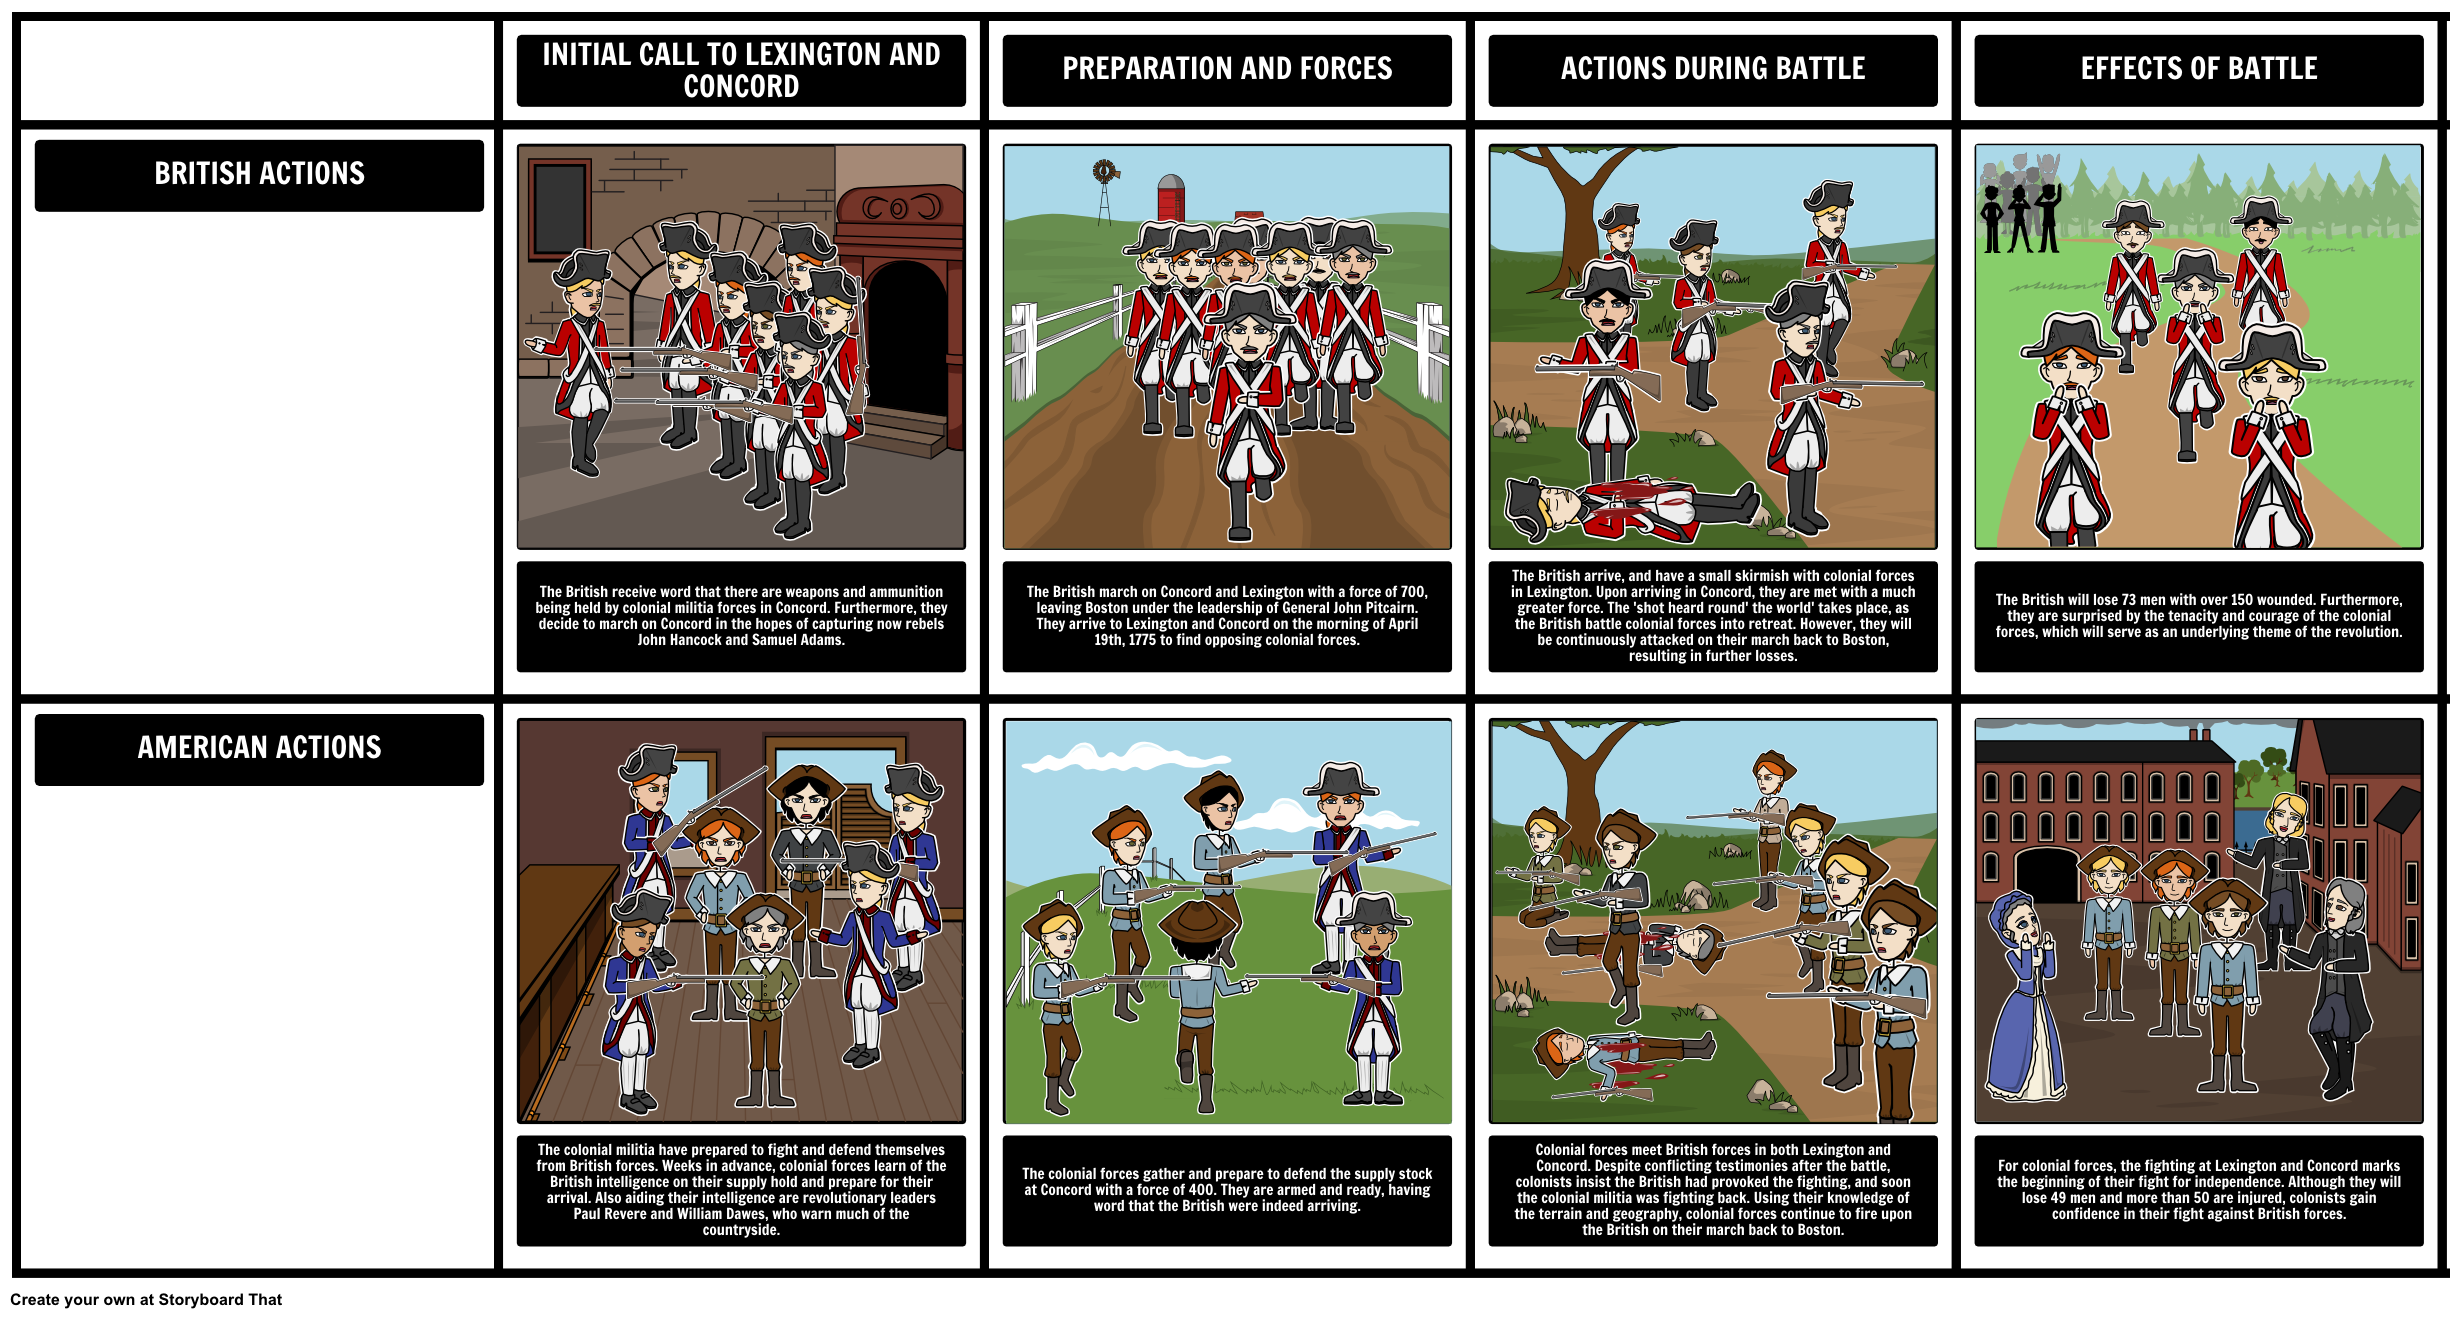 For this activity, students will create a storyboard detailing the events leading up to, and of, the Battle of Lexington and Concord.